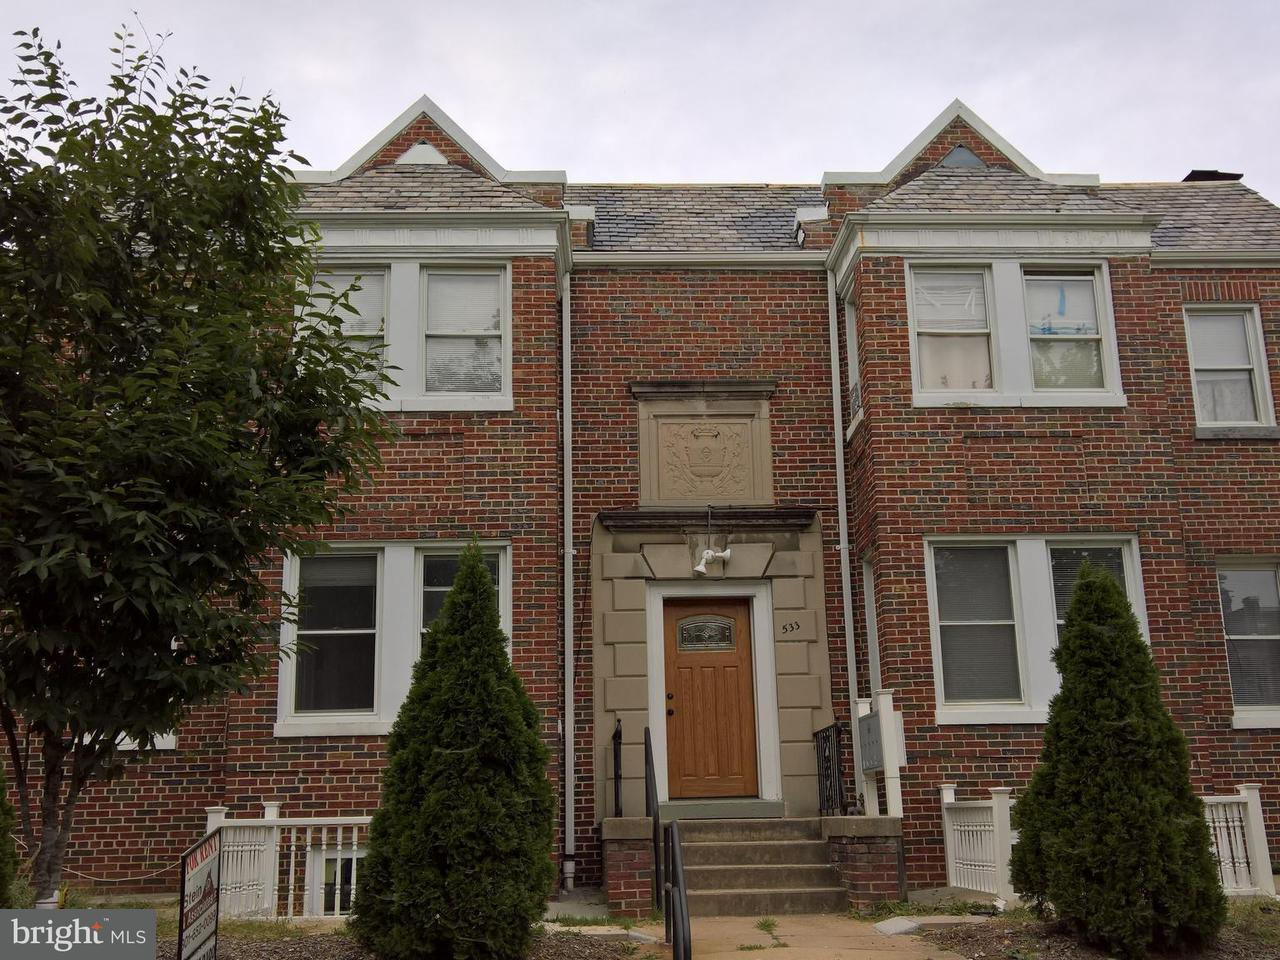 Multi-Family Home for Sale at 533 Peabody St Nw 533 Peabody St Nw Washington, District Of Columbia 20011 United States